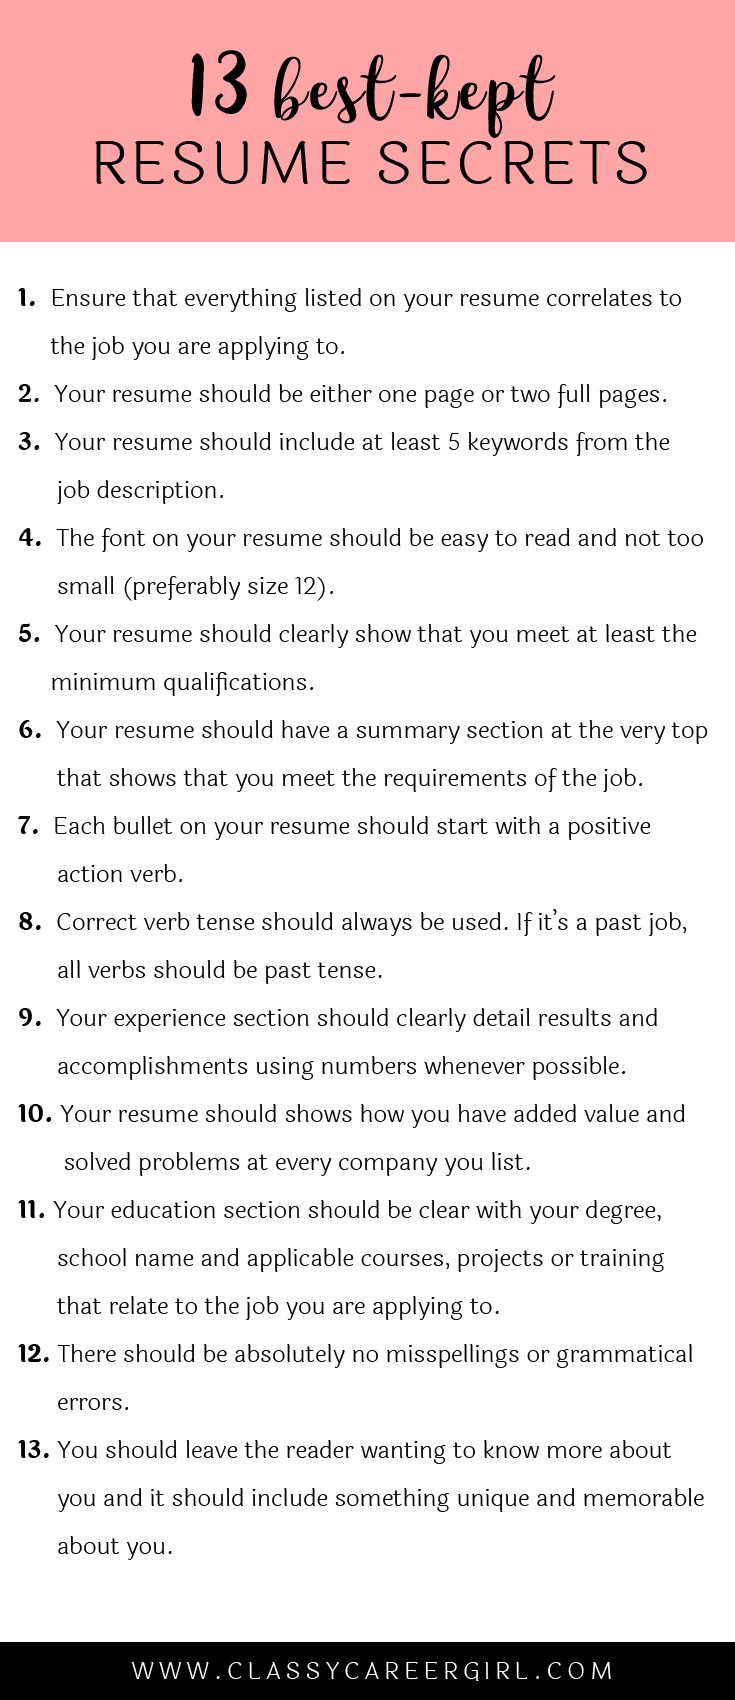 Opposenewapstandardsus  Gorgeous  Ideas About Resume On Pinterest  Cv Format Resume Cv And  With Fascinating Some Hiring Managers Will Toss Your Resume Out If You Dont Know These  With Enchanting Nanny Resume Samples Also How To Write A Resume And Cover Letter In Addition Basic Computer Skills Resume And Video Resume Examples As Well As Example Skills For Resume Additionally Resume Template On Word From Pinterestcom With Opposenewapstandardsus  Fascinating  Ideas About Resume On Pinterest  Cv Format Resume Cv And  With Enchanting Some Hiring Managers Will Toss Your Resume Out If You Dont Know These  And Gorgeous Nanny Resume Samples Also How To Write A Resume And Cover Letter In Addition Basic Computer Skills Resume From Pinterestcom